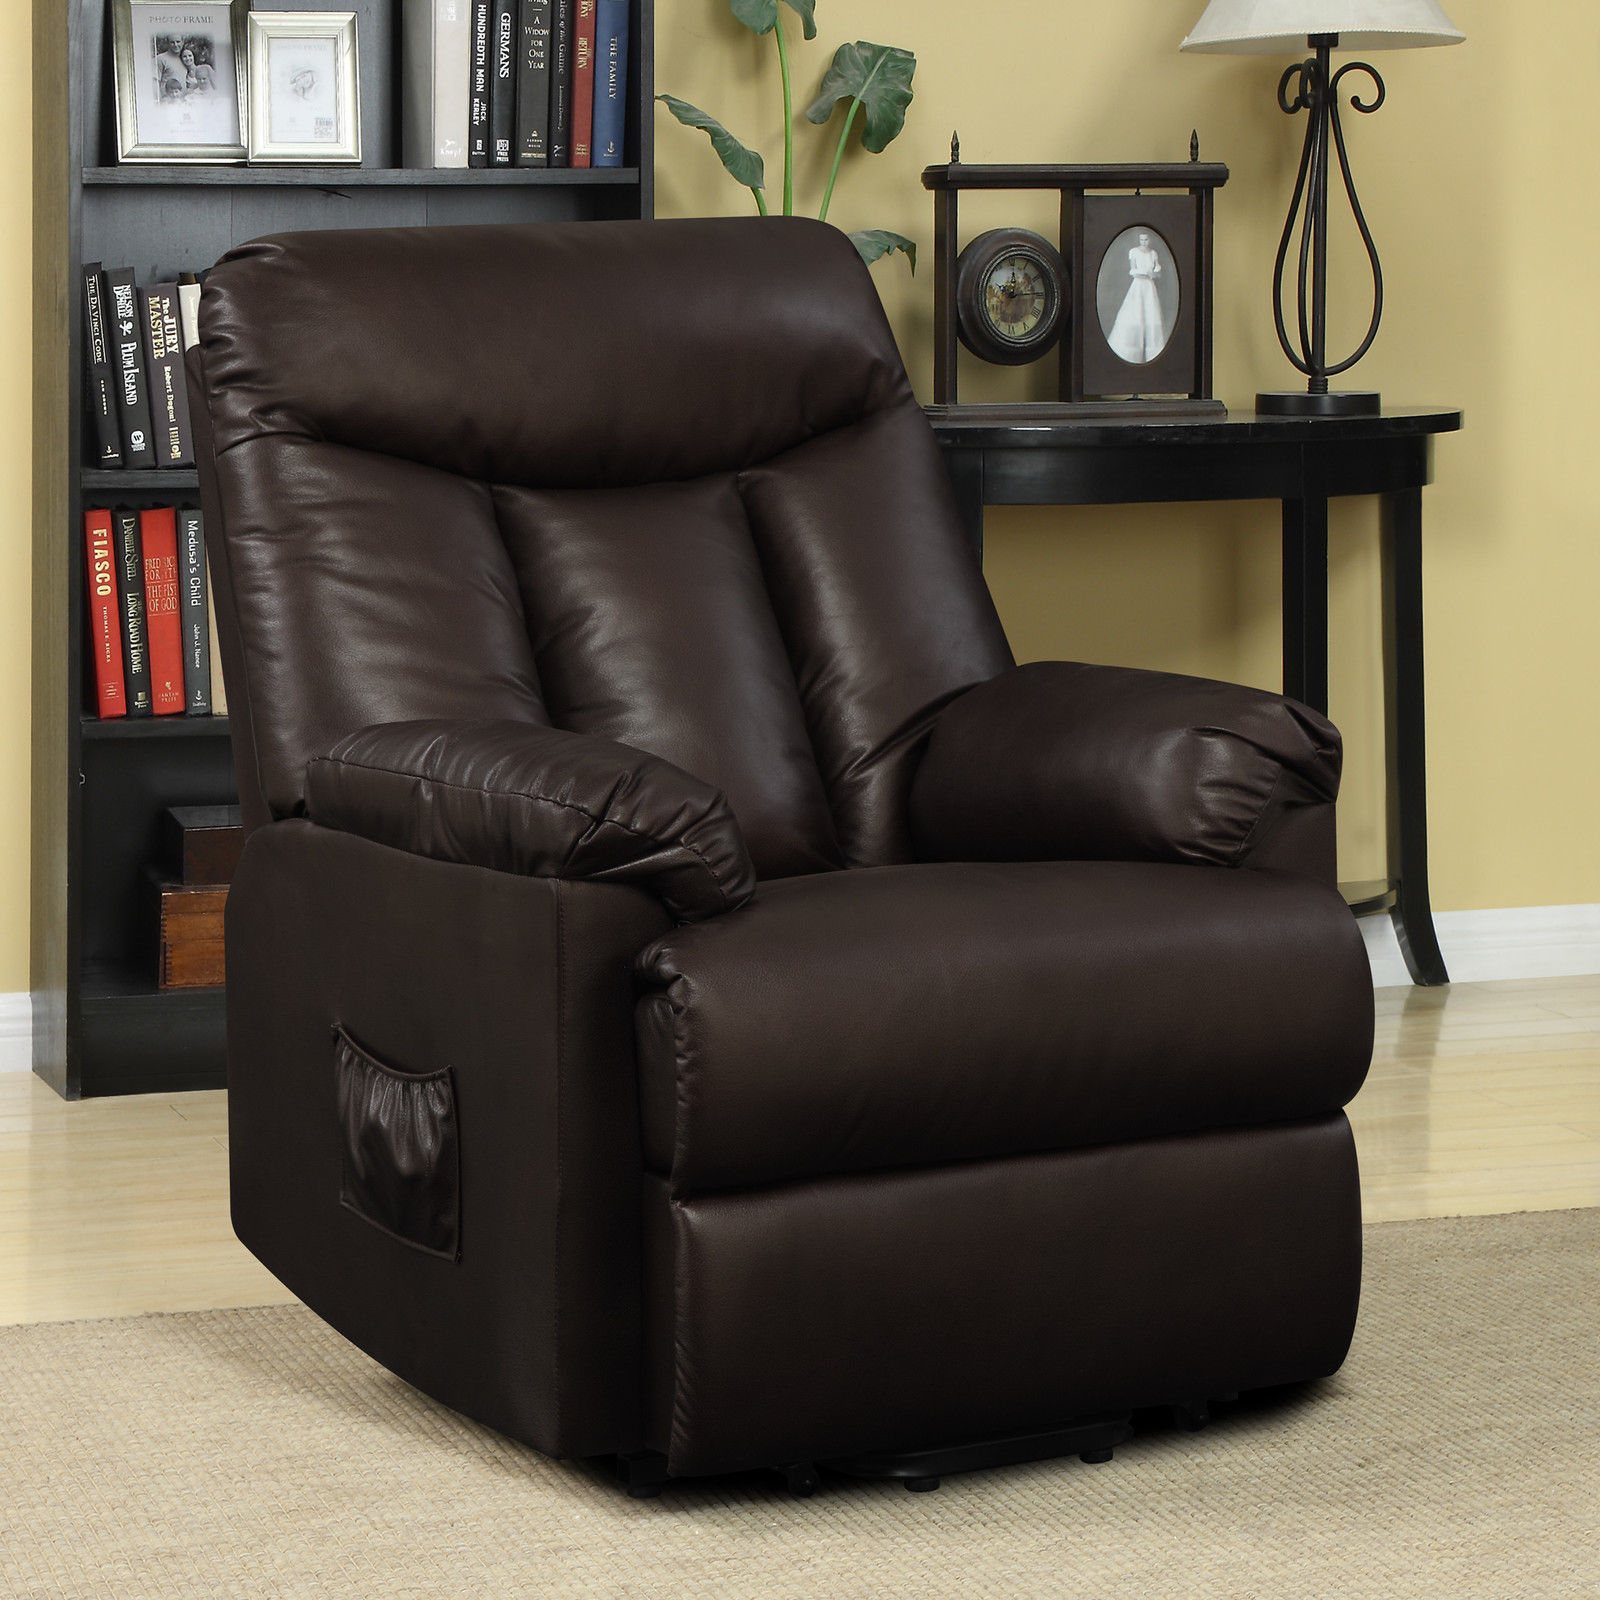 electric lift chair recliner brown leather power motion lounge seat